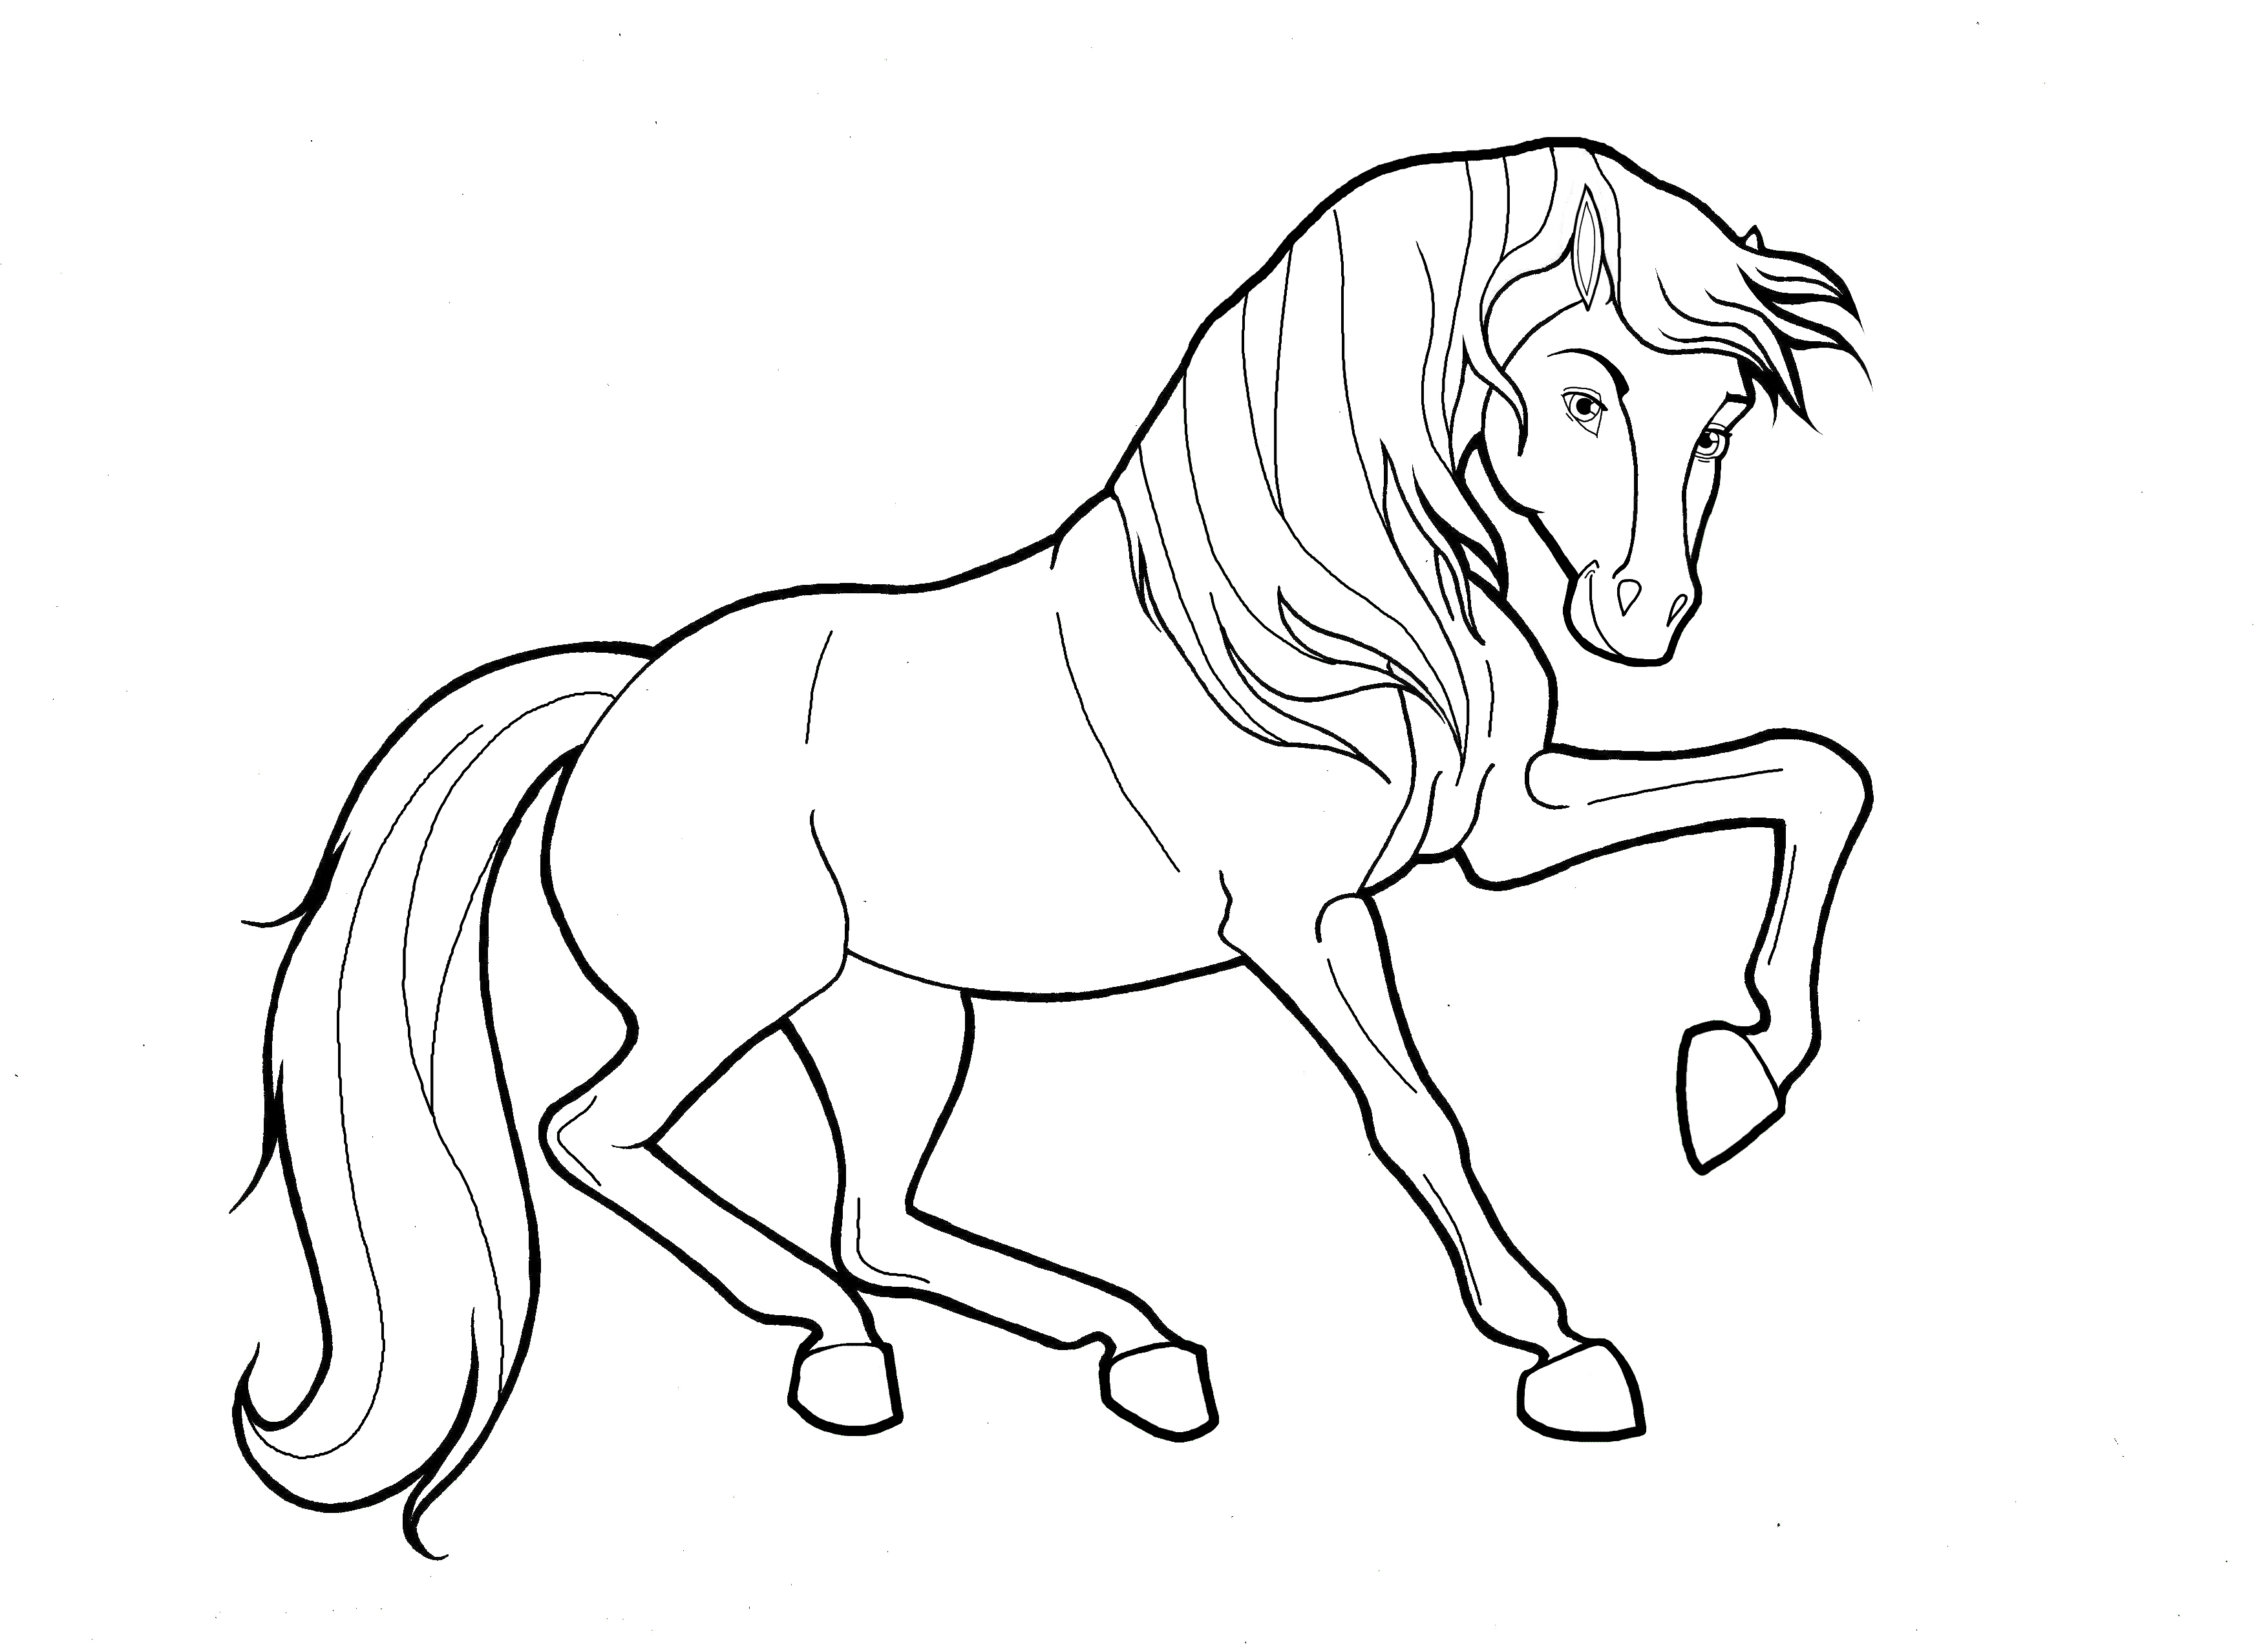 pictures of horses to colour in horse free to color for children trotting horse horses horses in to pictures colour of